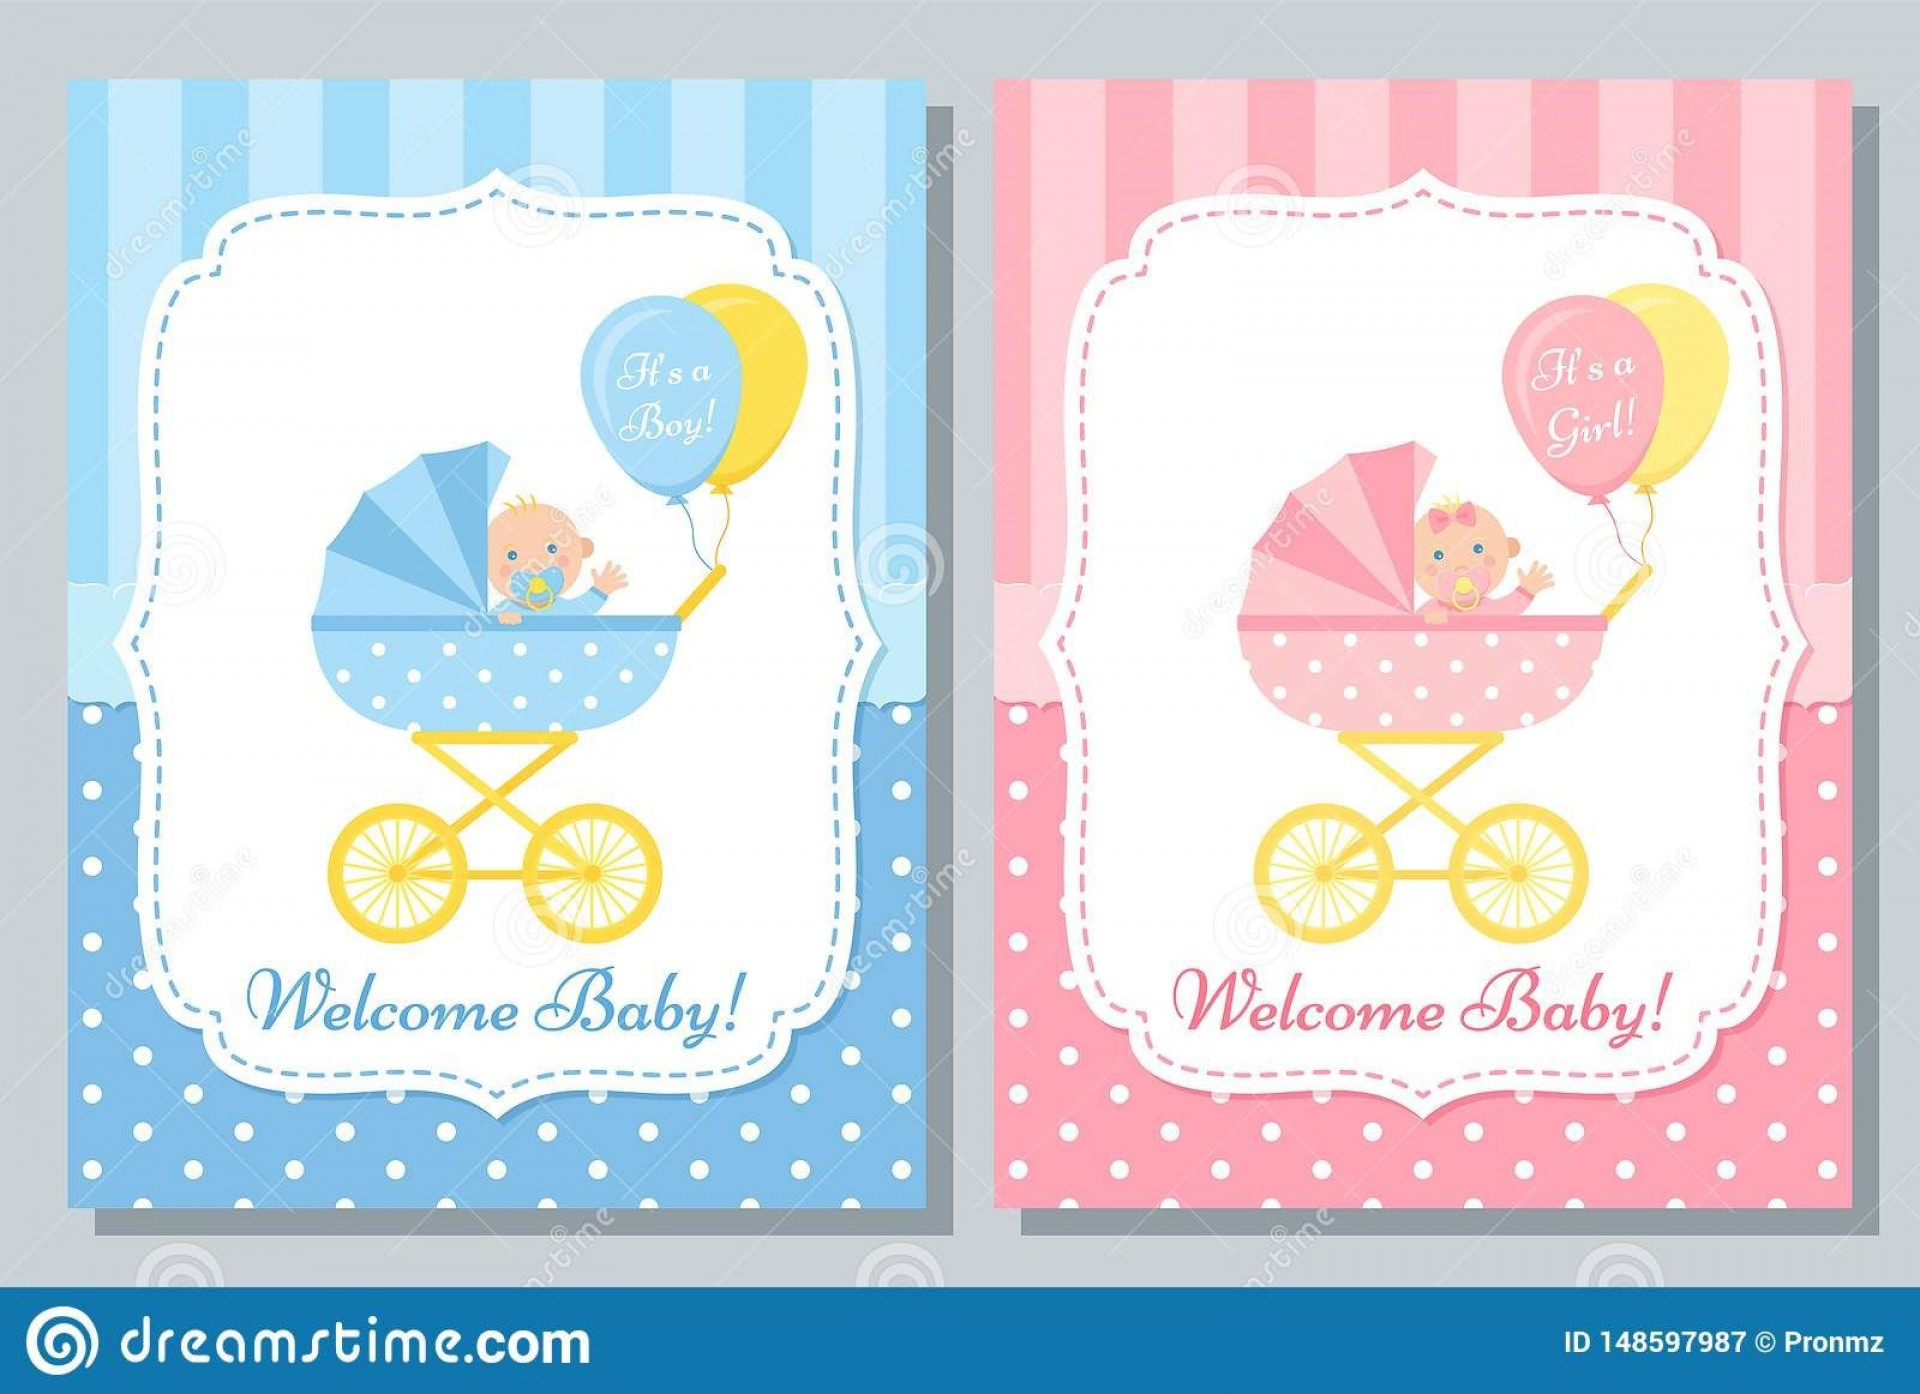 003 Archaicawful Baby Shower Card Design Free Inspiration  Template Microsoft Word Boy Download1920